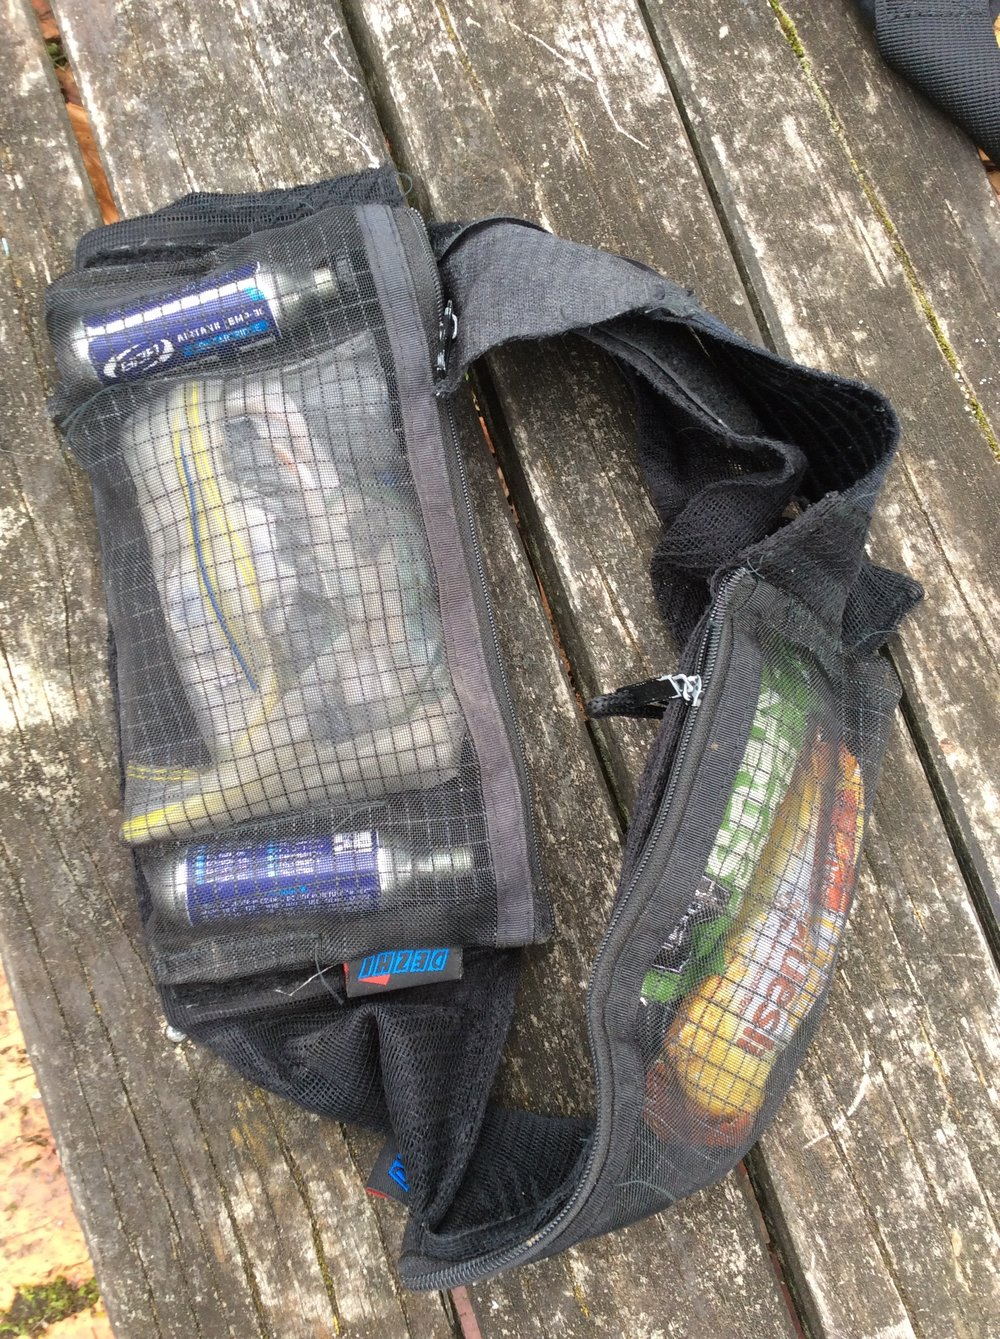 The main velcro removable zippered unit held all my shit for trailside repairs and the front one my sugar stash. The Batman and me are like homies now.